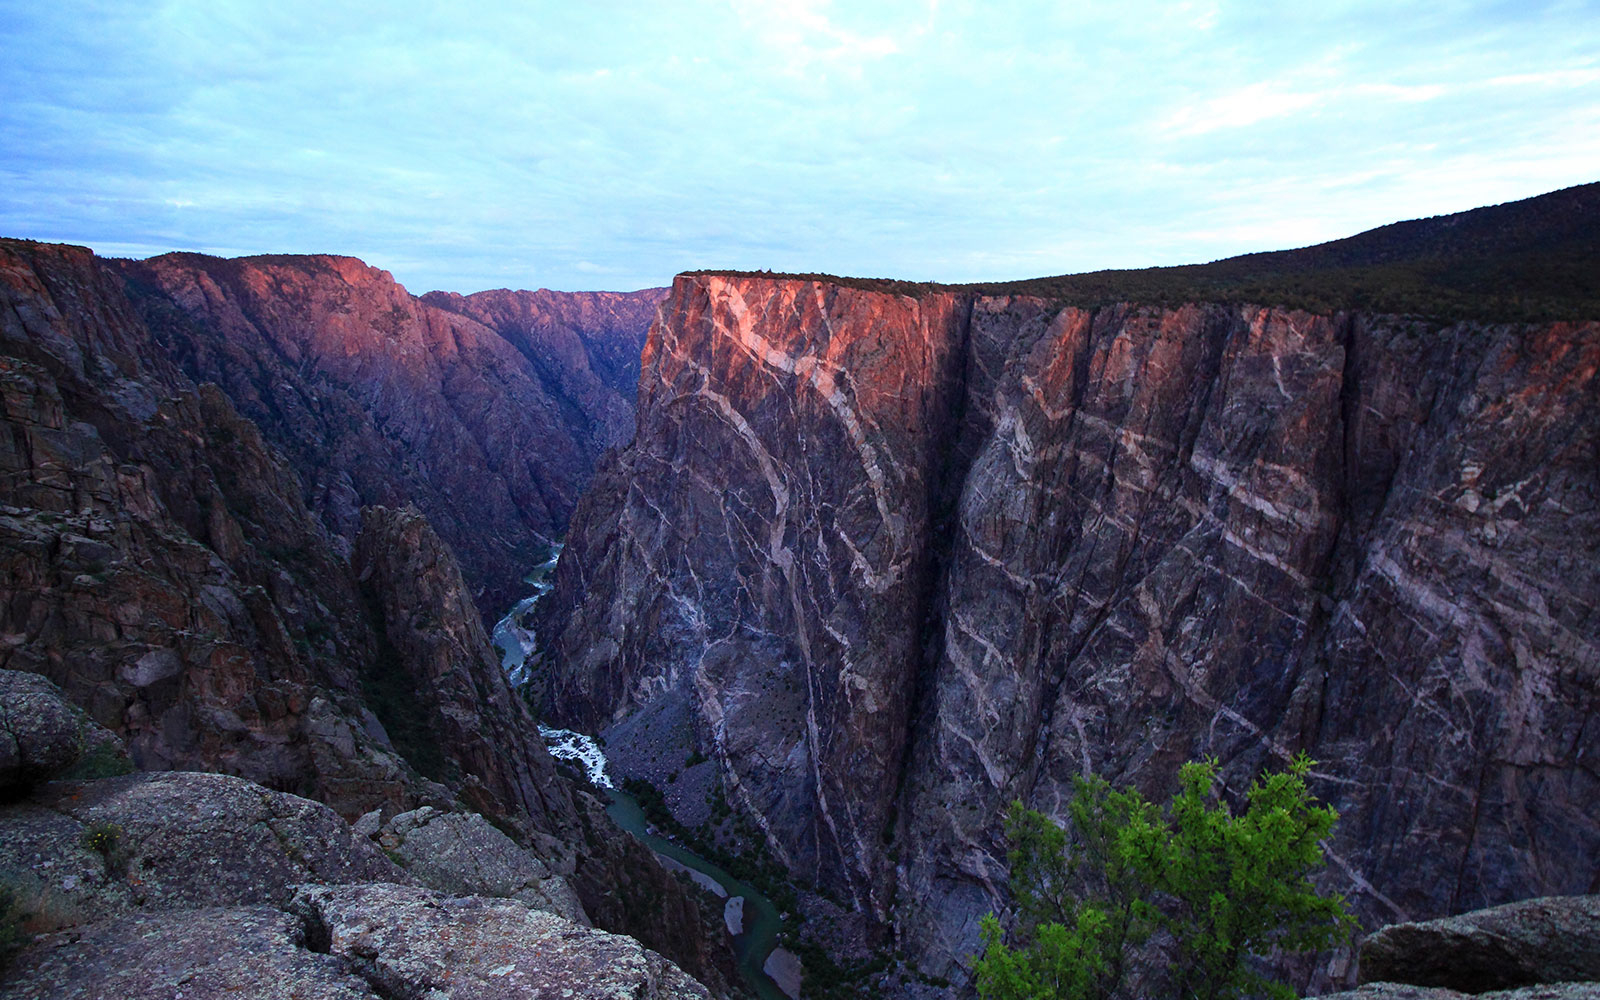 Black Canyon of the Gunnison National Park in Gunnison, Colorado